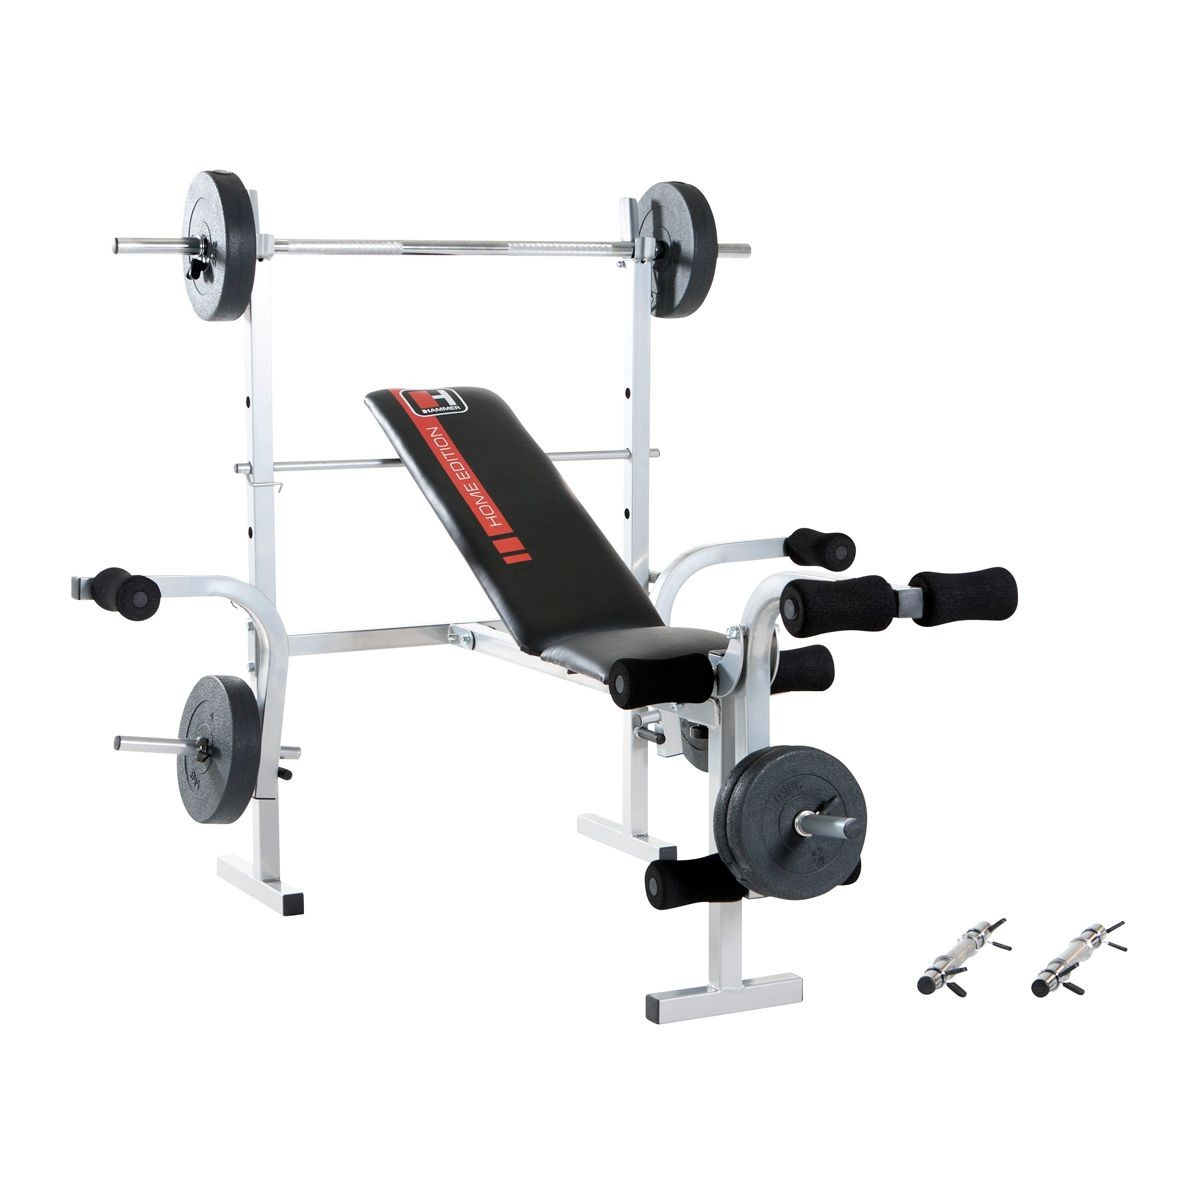 bench gym xr benches golds dp weight s with weights gold canada amazon